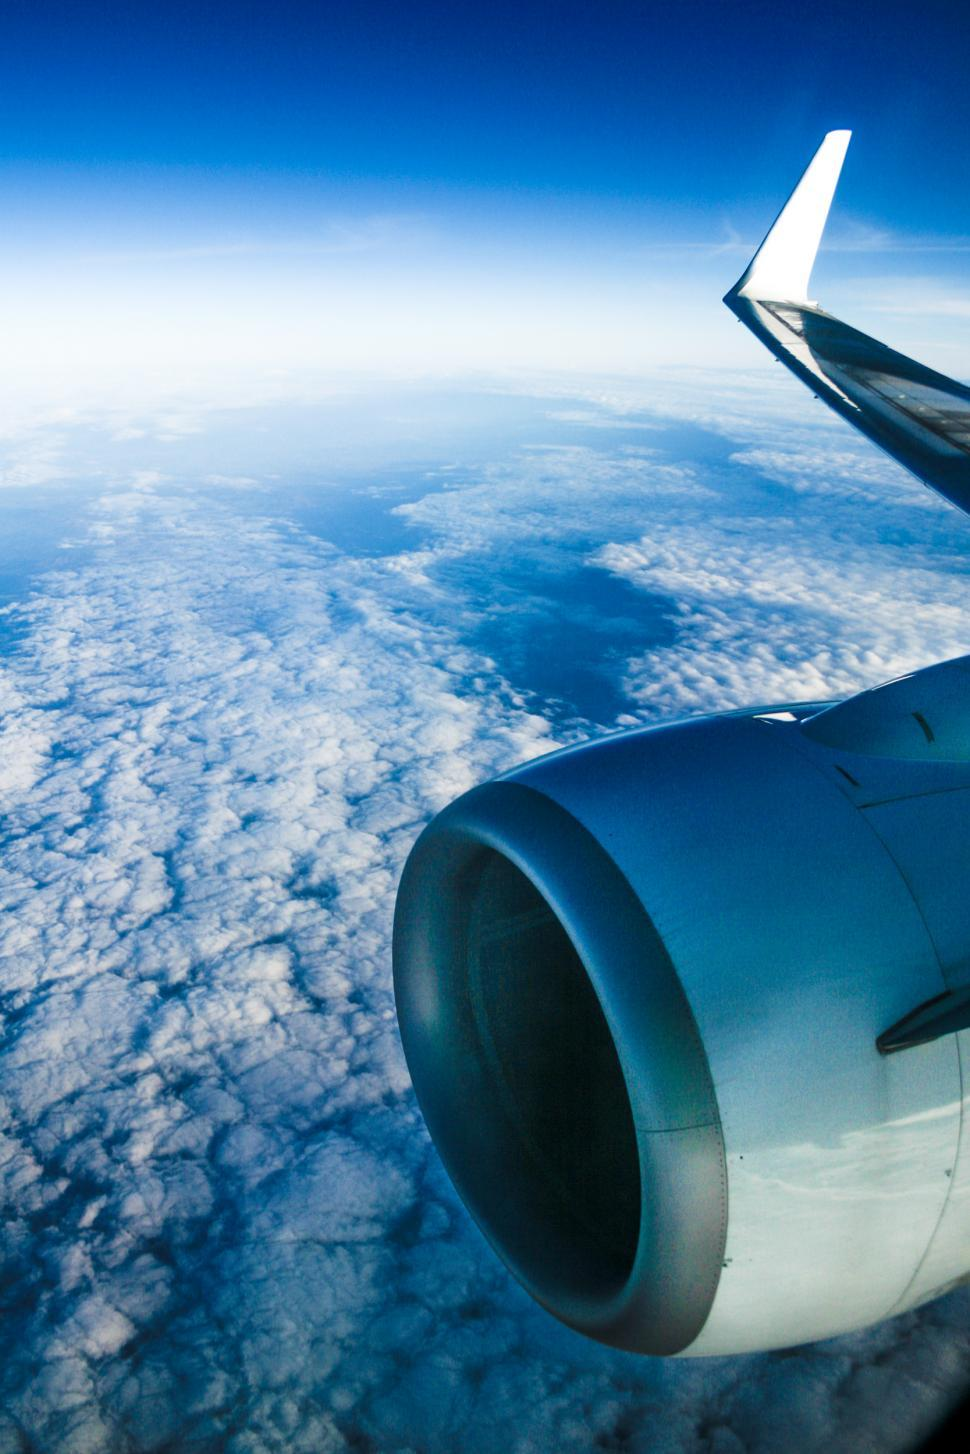 Download Free Stock HD Photo of view from the airplane window  Online